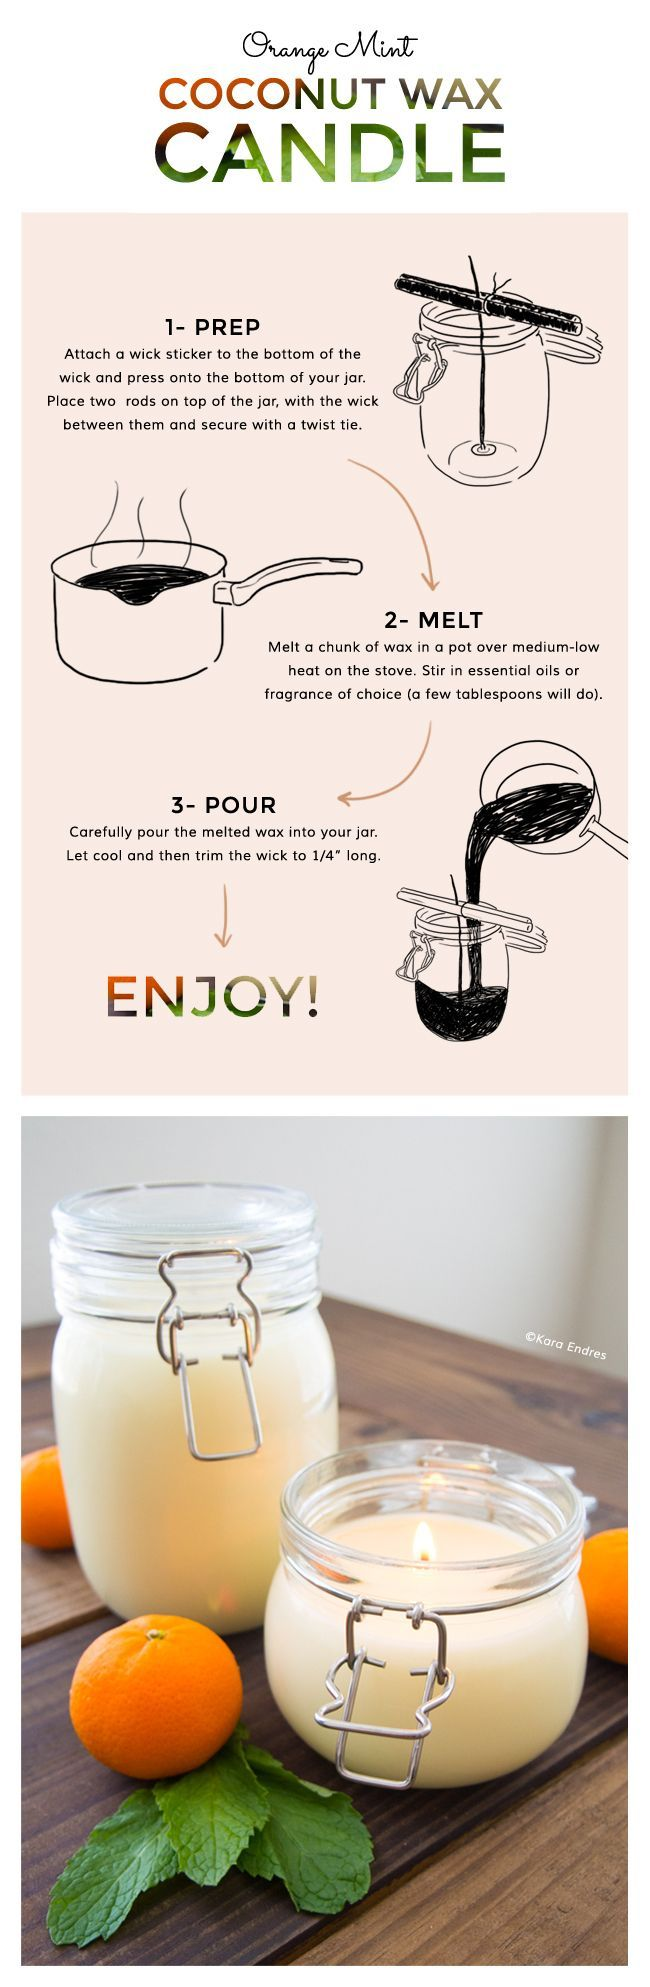 1000+ ideas about Homemade Candles on Pinterest | Diy candles ...